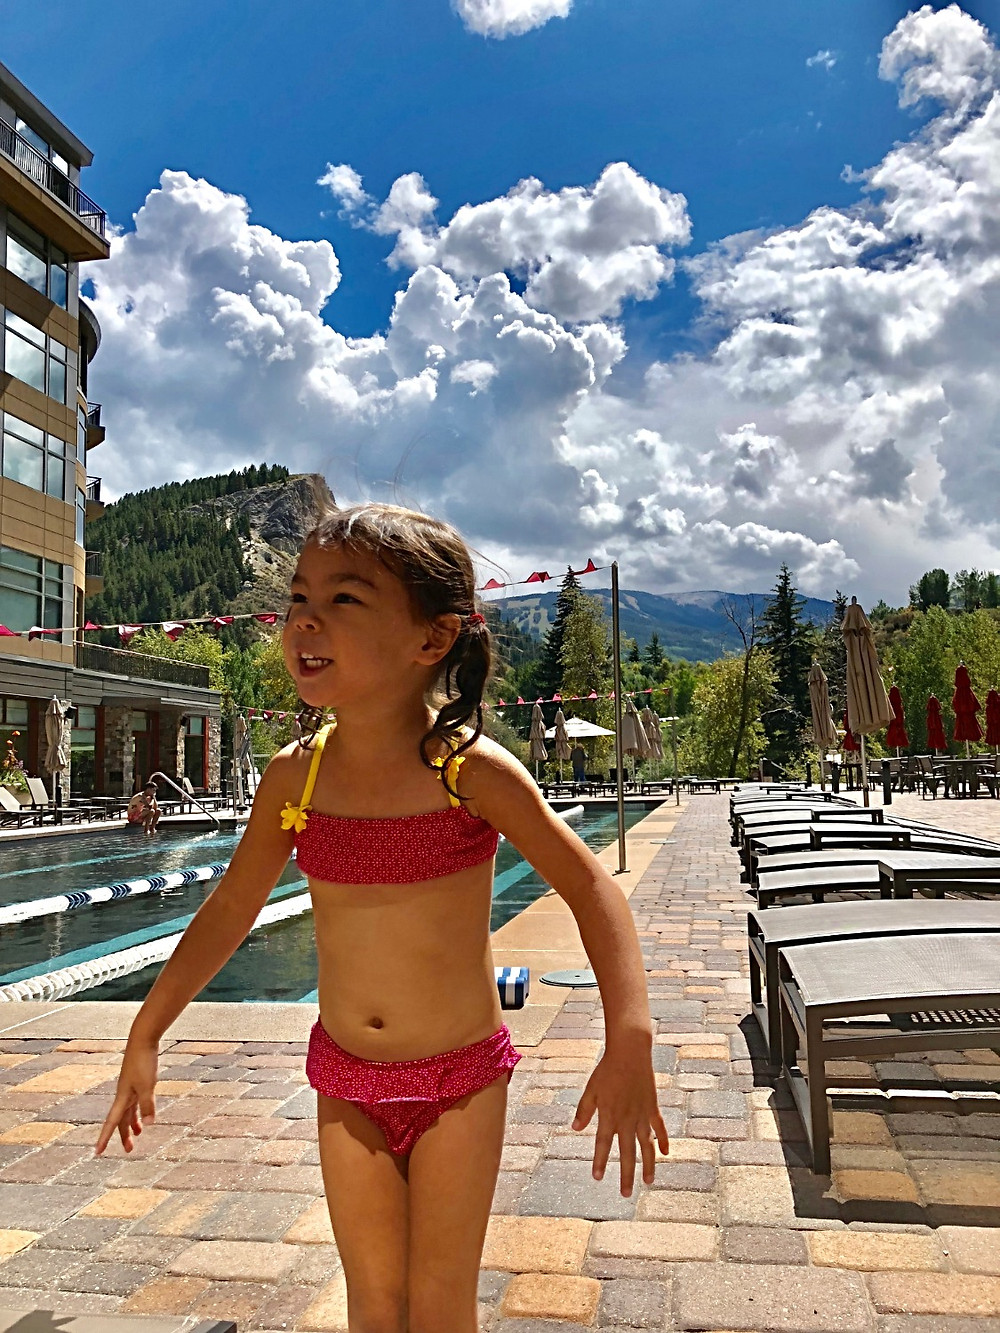 Westin Riverfront Resort and Spa, Curious G and Me, best hotels in Colorado, best hotels in Vail, best hotels in Avon, Colorado travel, Colorado family travel, Colorado with kids, Vail with kids, poolside with a mountain view, Colorado family getaway